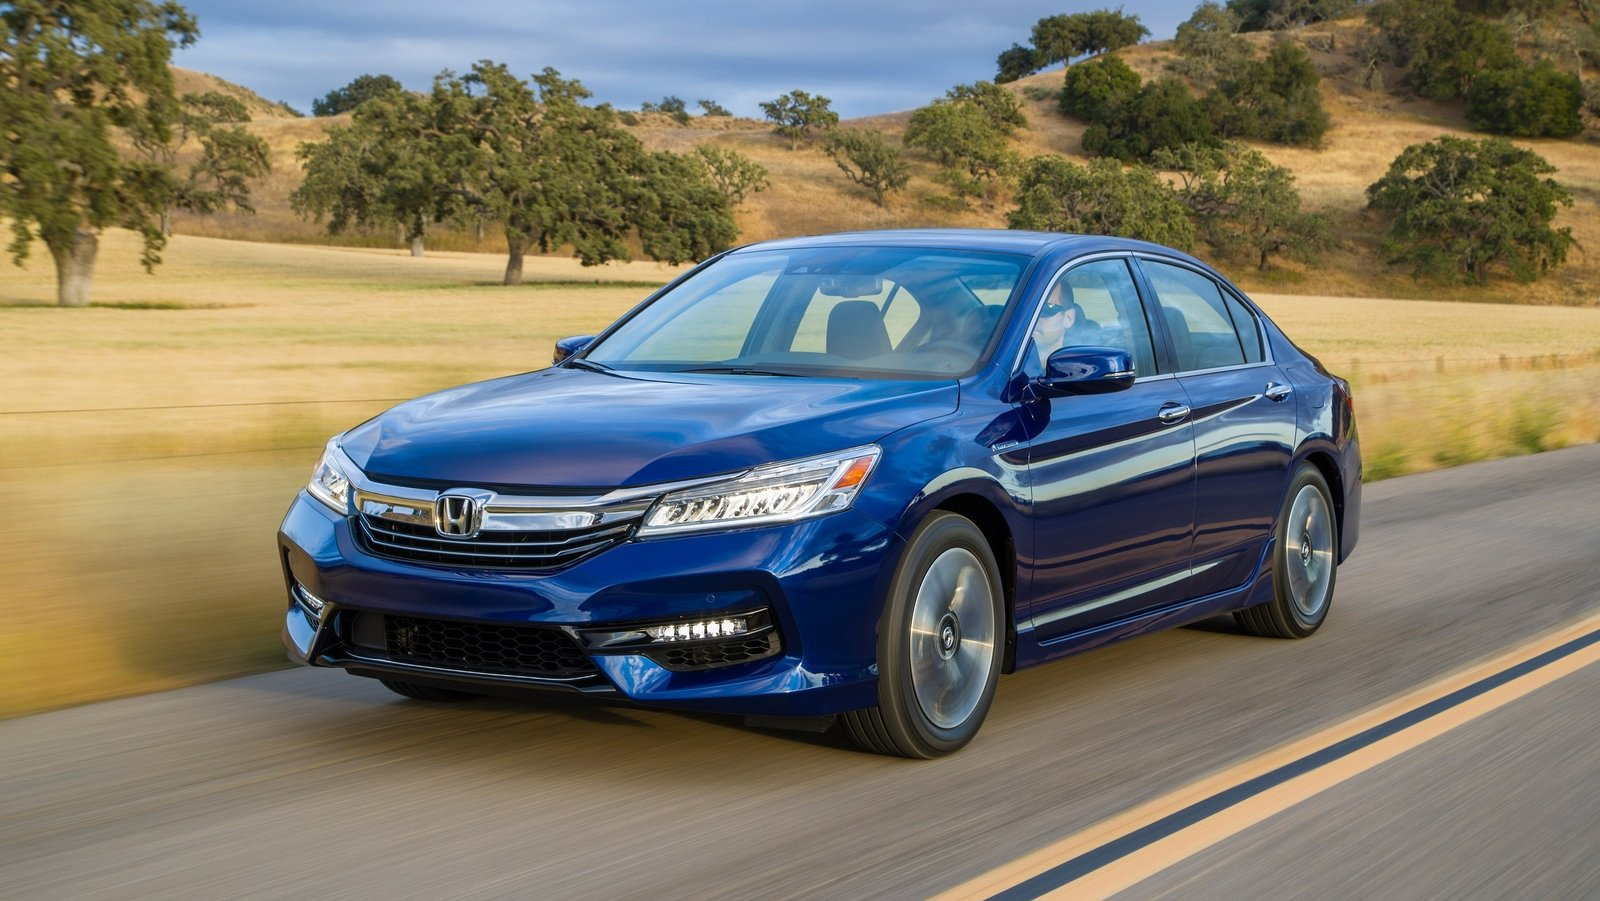 2017 honda accord hybrid review top speed for Best honda accord year